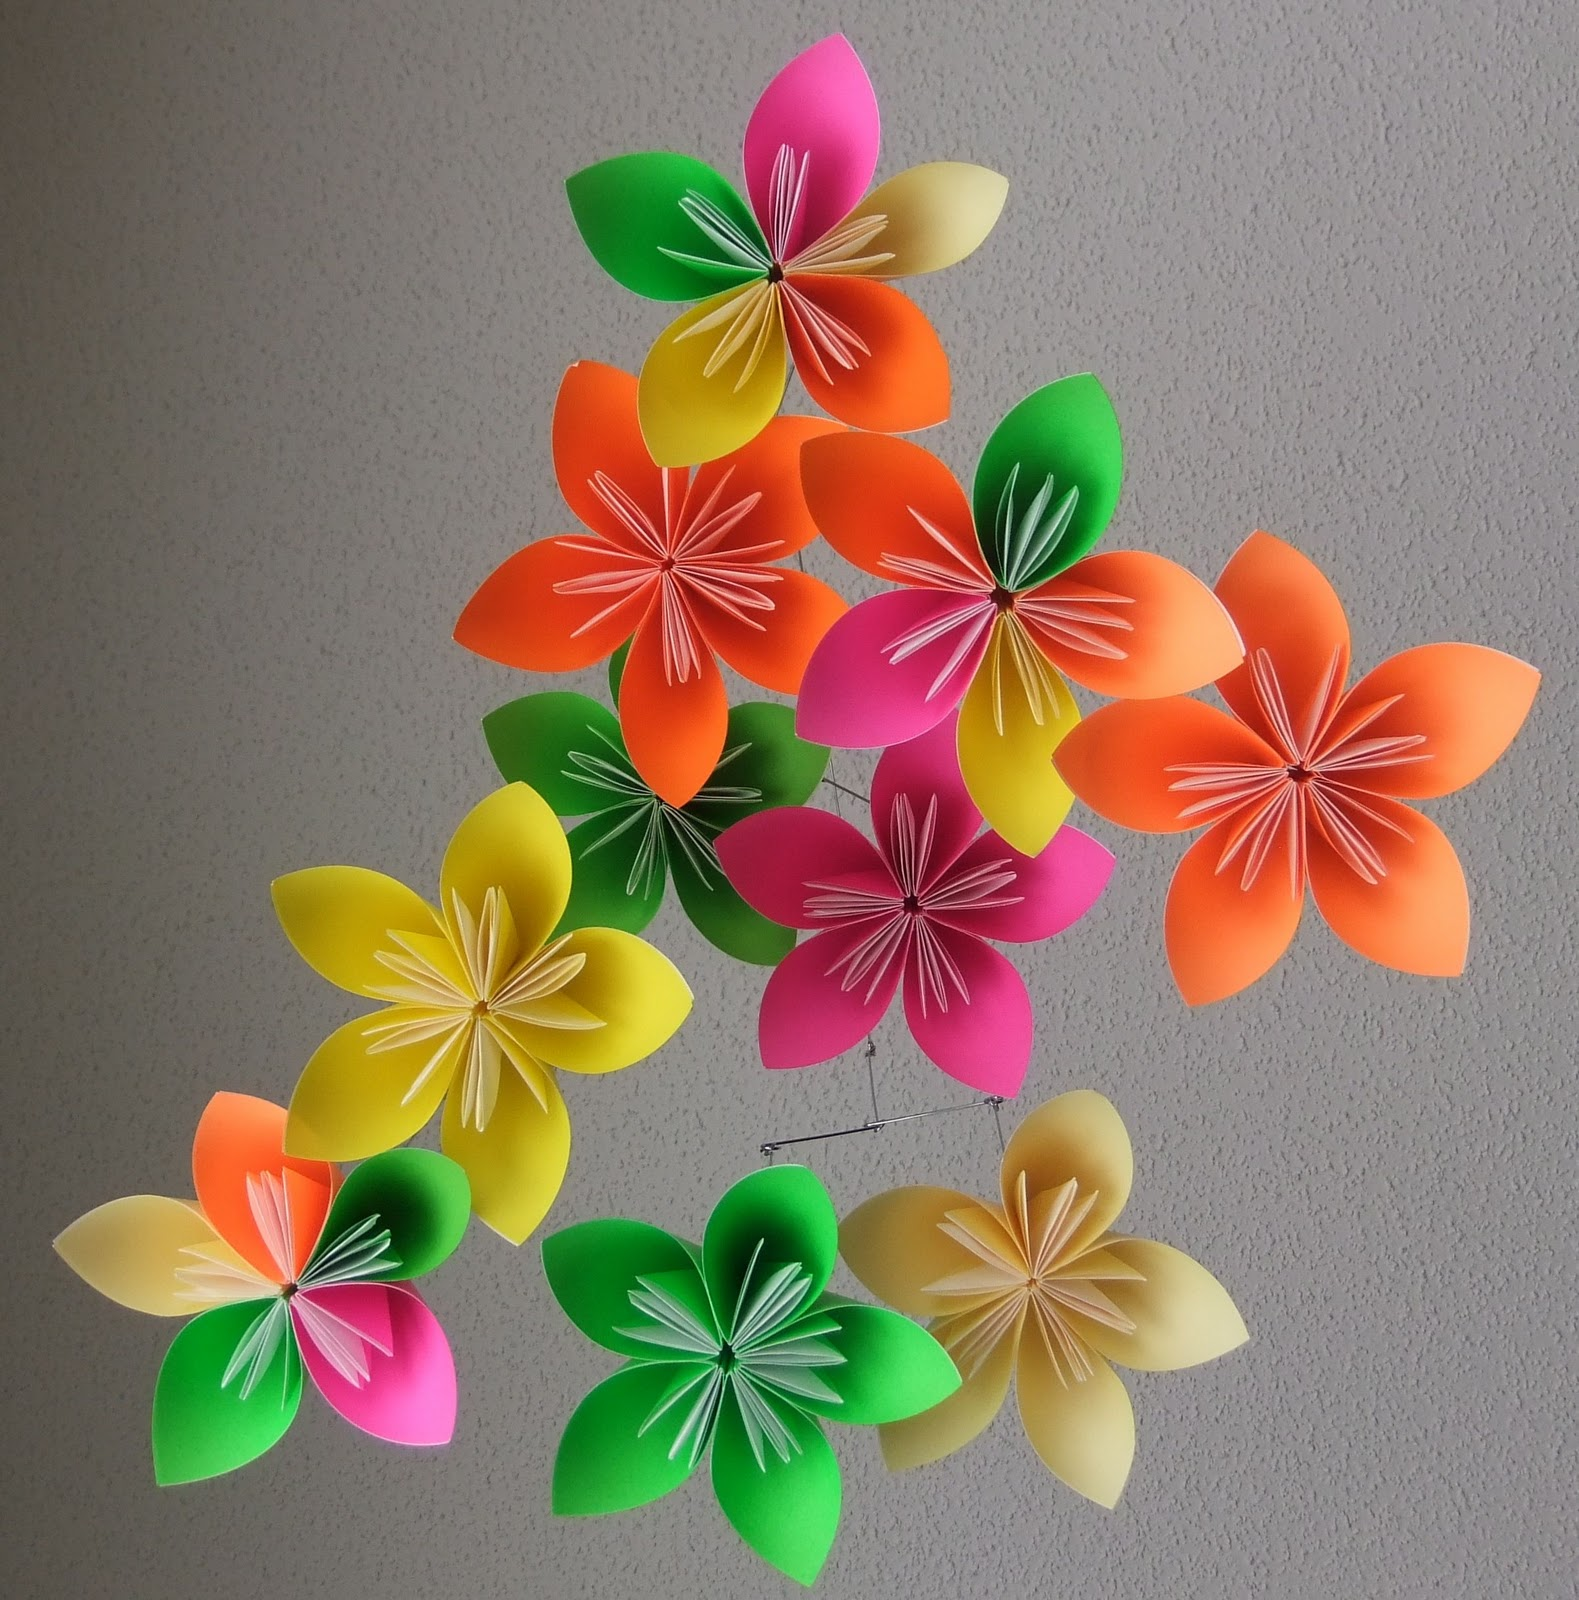 The mommy days custom etsy job it was a challenge and something different so heres to hoping i get some more custom requests for my flower mobiles frames or origami flower ornaments mightylinksfo